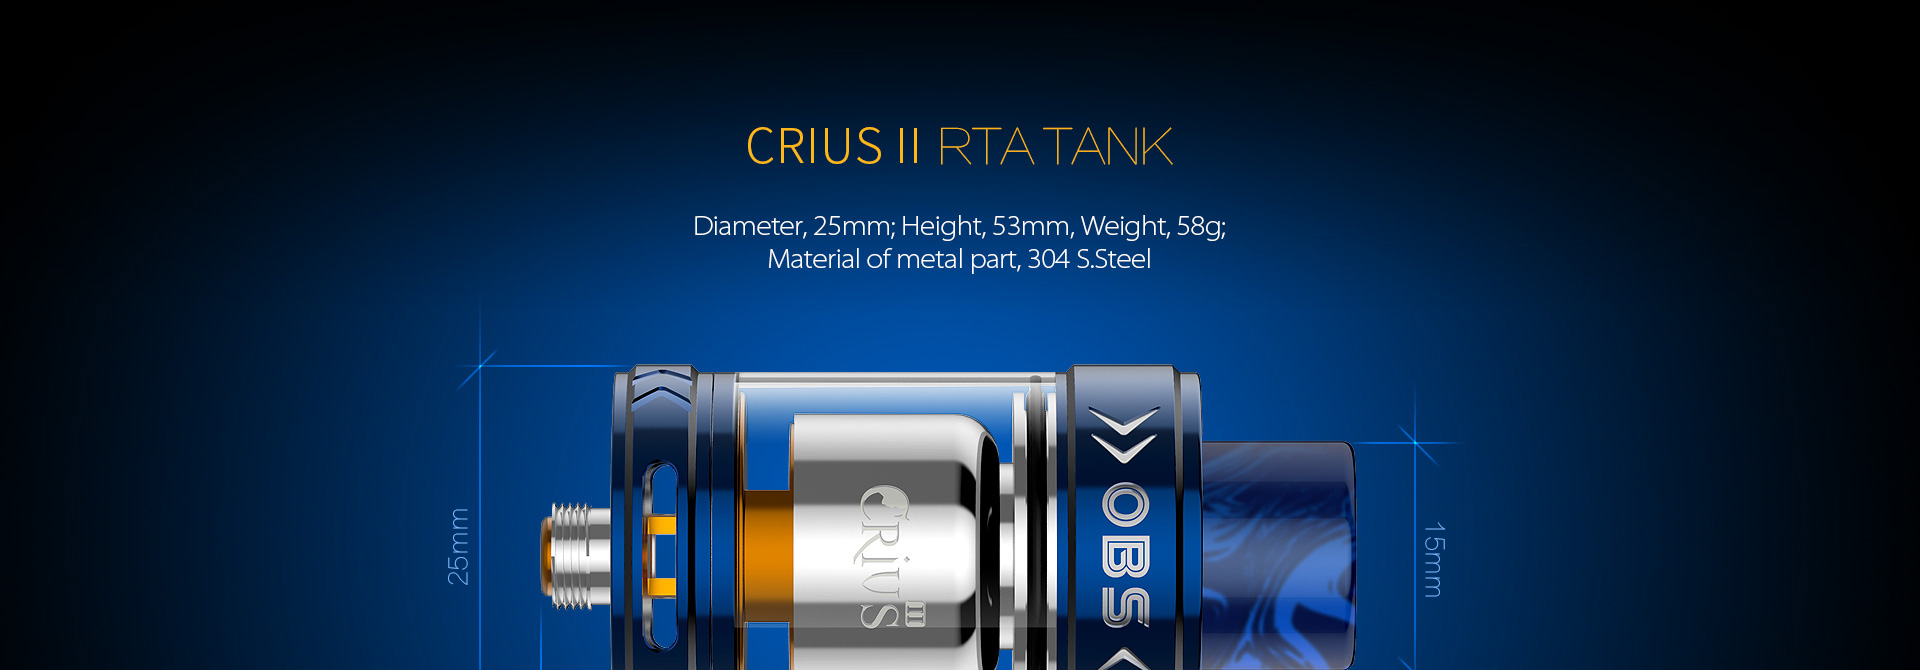 Crius 2 RTA by OBS vapexperts 17